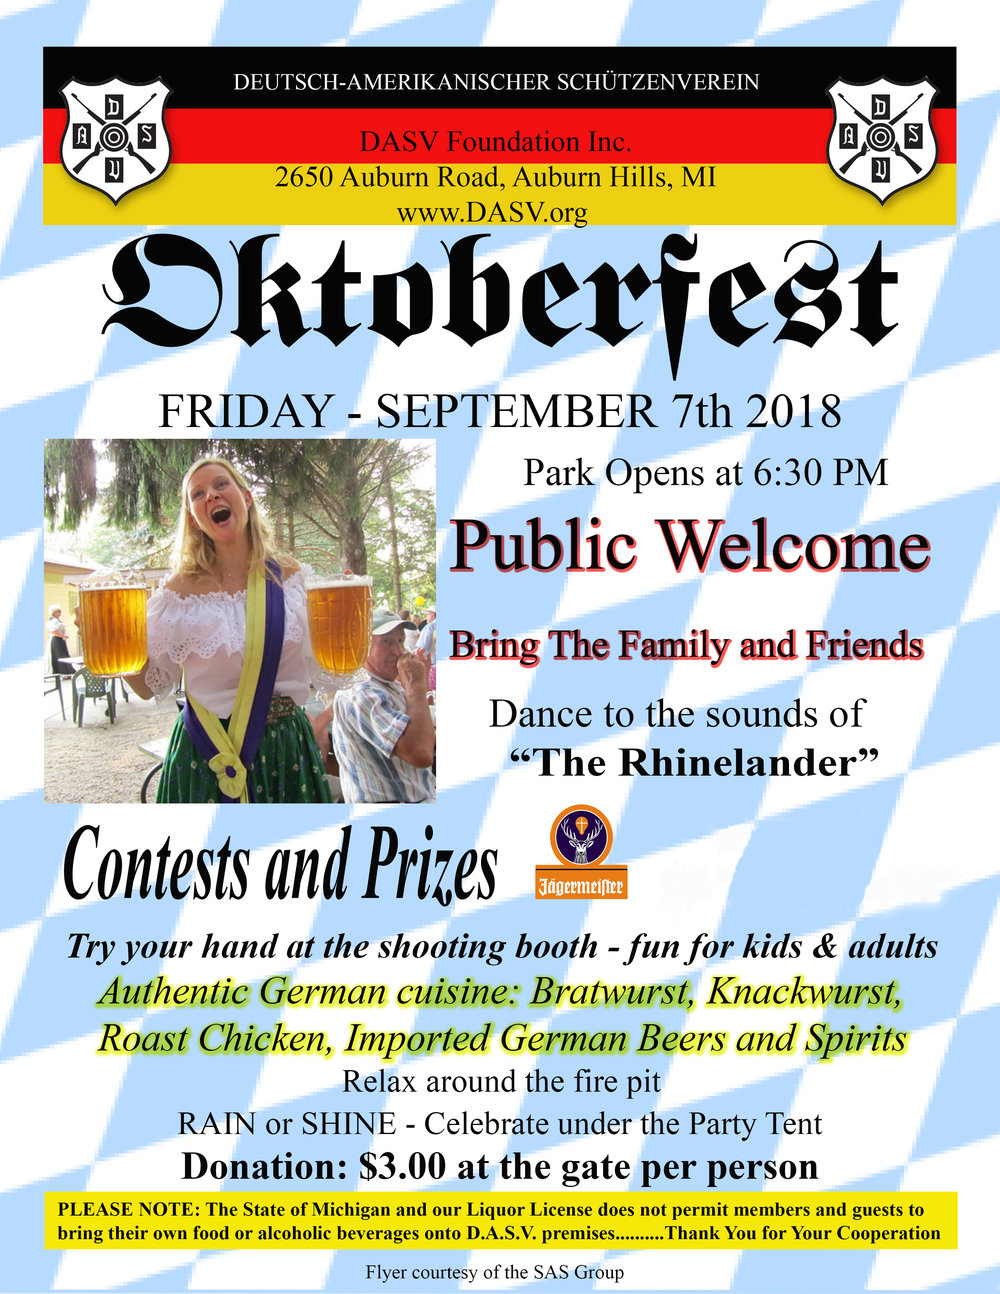 OCTOBERFEST Flyer 2018 REVISED 08-27-18.jpg